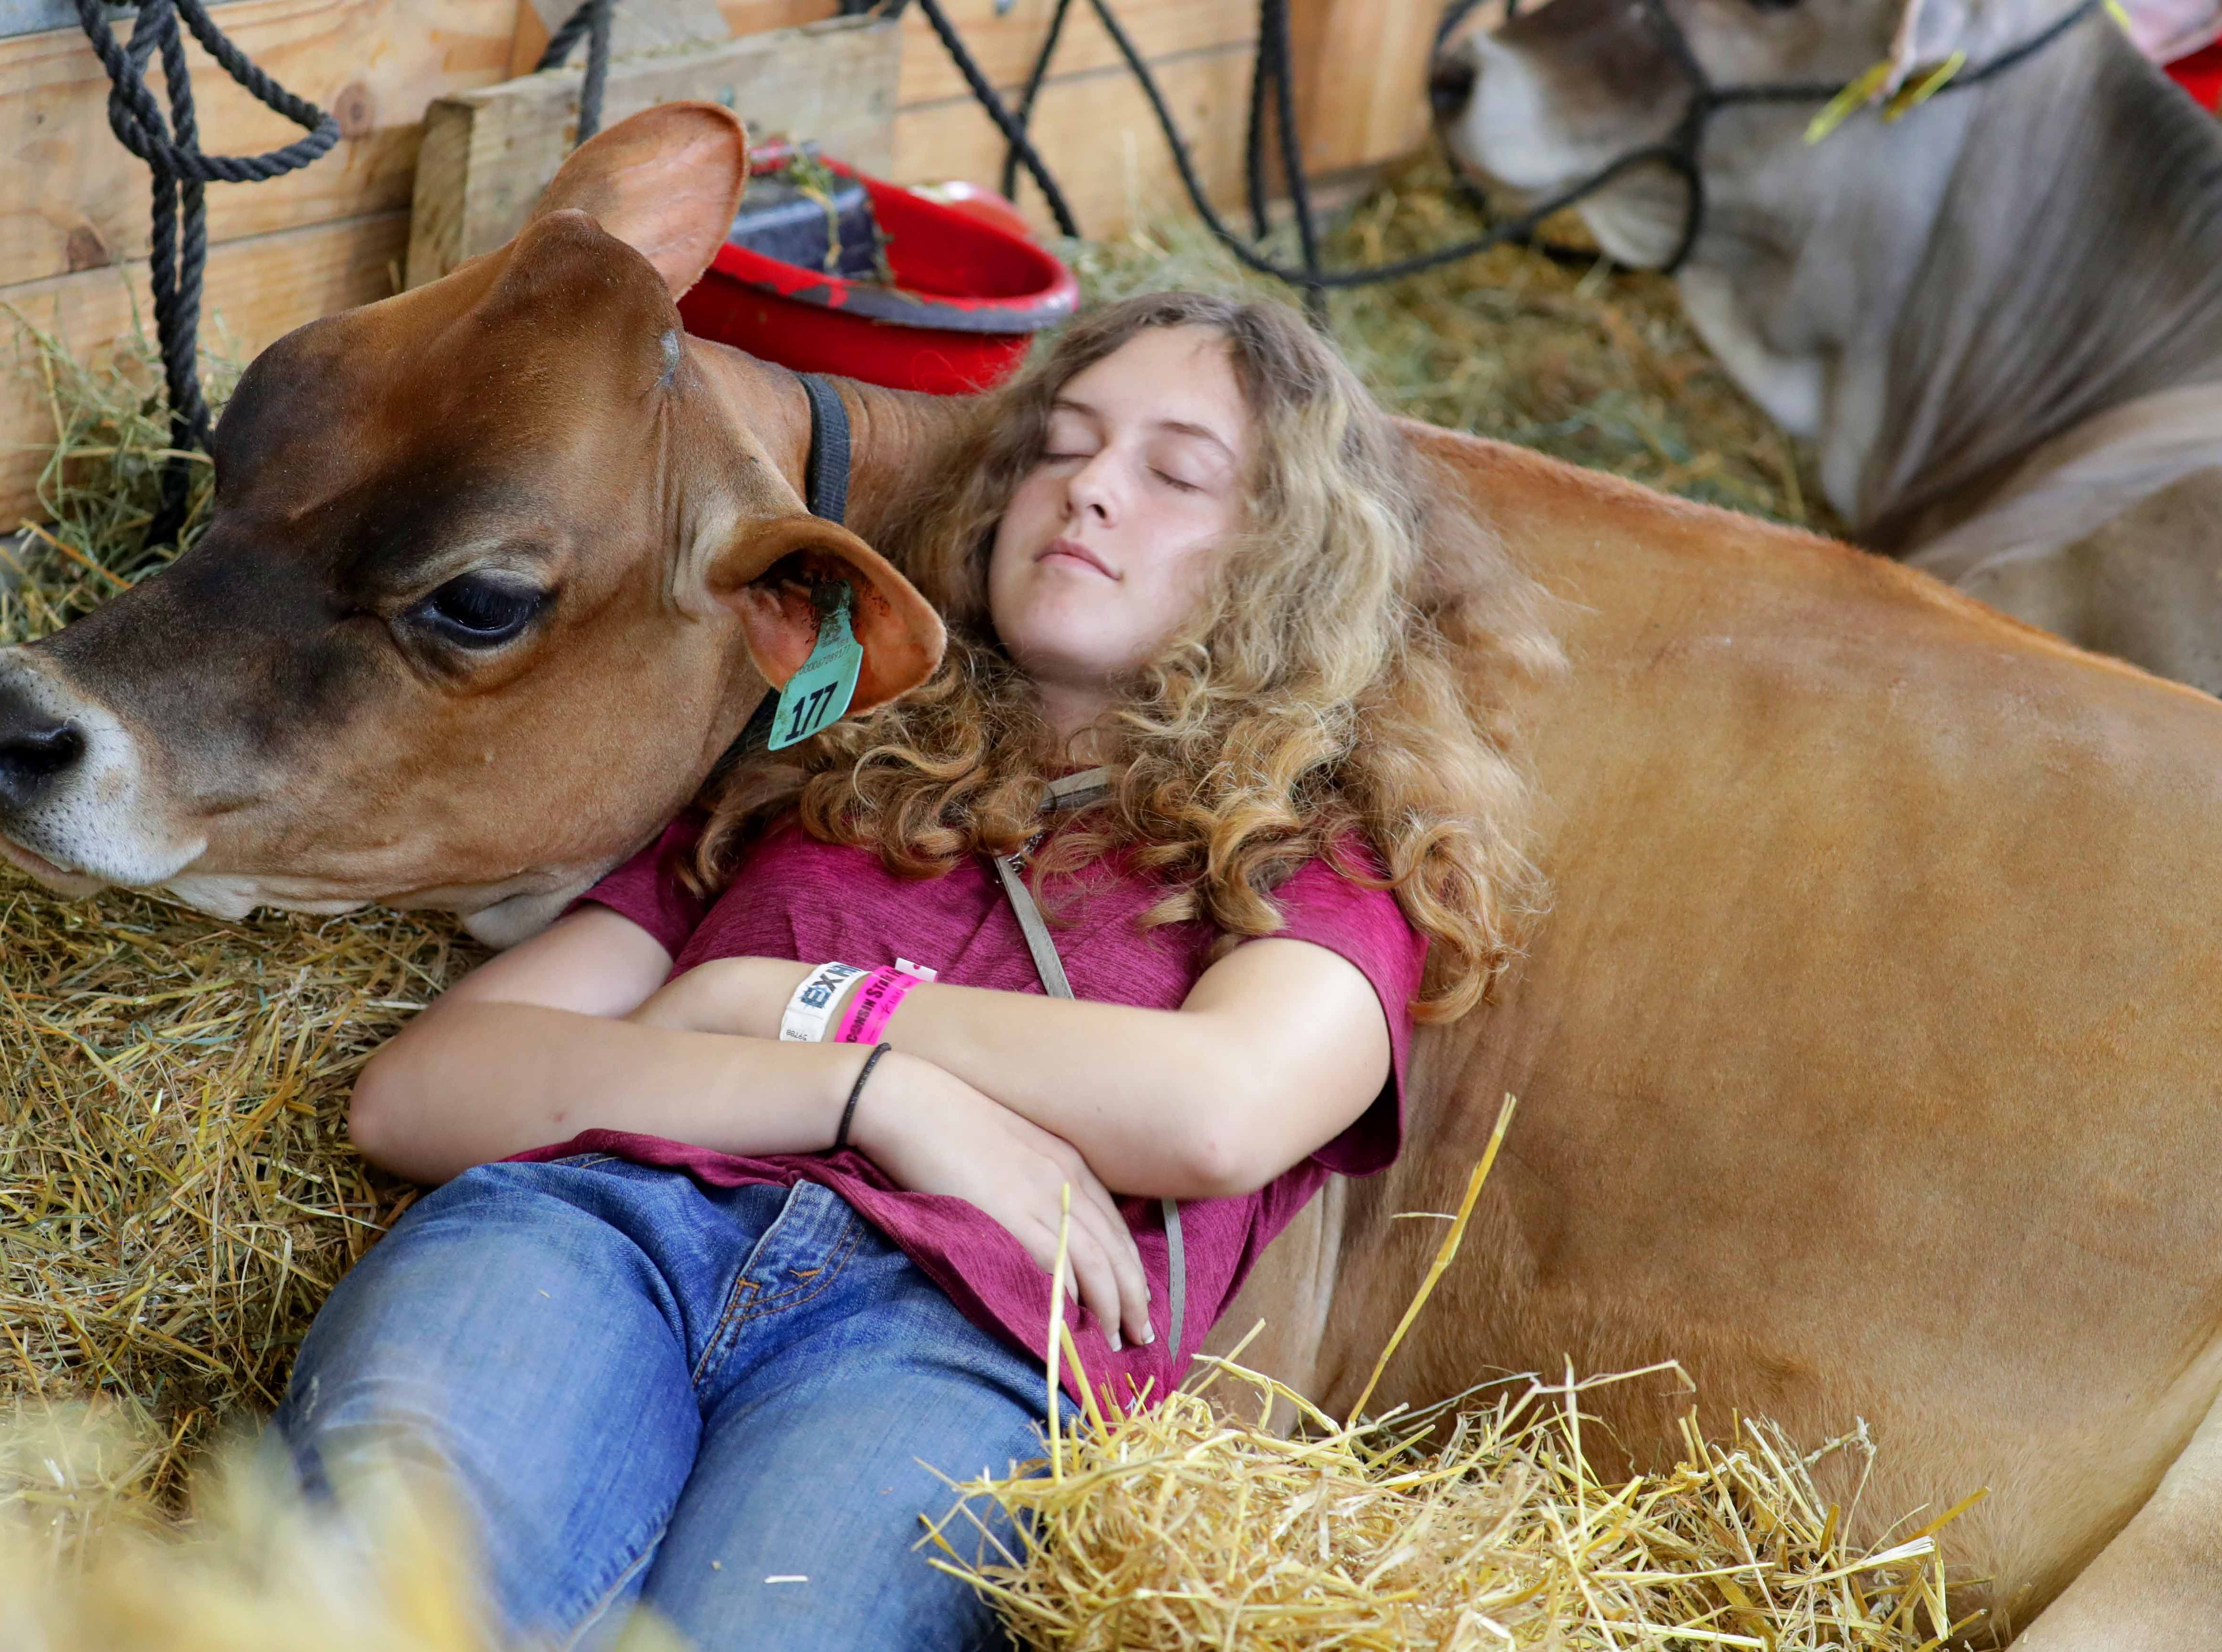 Mckenna Layer, 14, of Richland Center  and a member of the Syresville Starlets 4-H club, takes a rest on her nearly 1-year-old Jersey calf, Melody. Youths from across the state descended on the Wisconsin State Fair grounds in West Allis to ready their animals for shows.